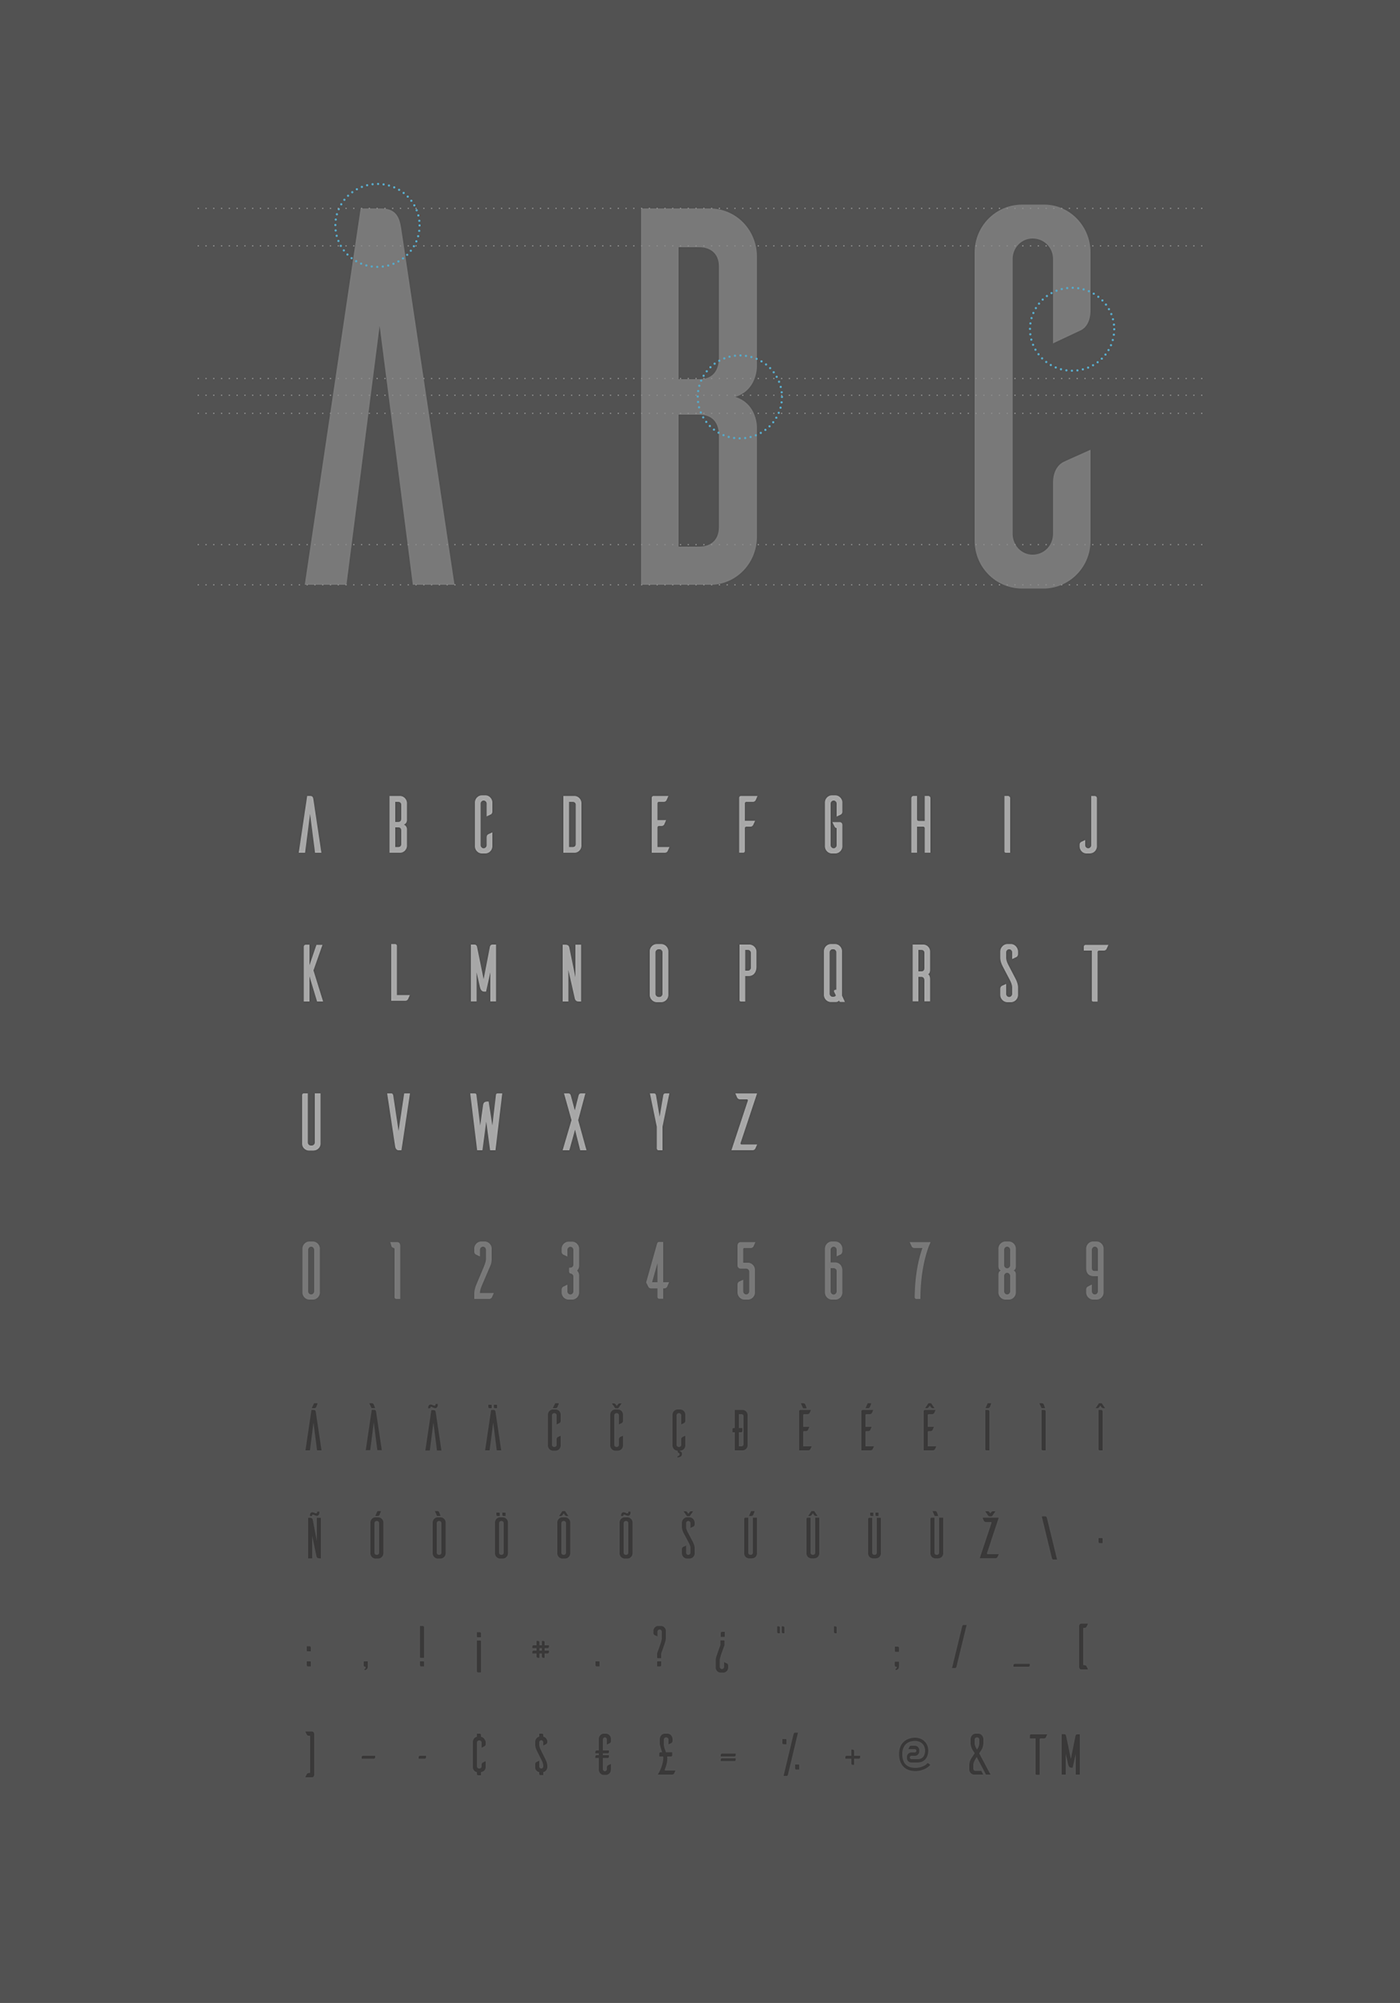 type font tipografia download free display typography tipo Typeface ailerons typography